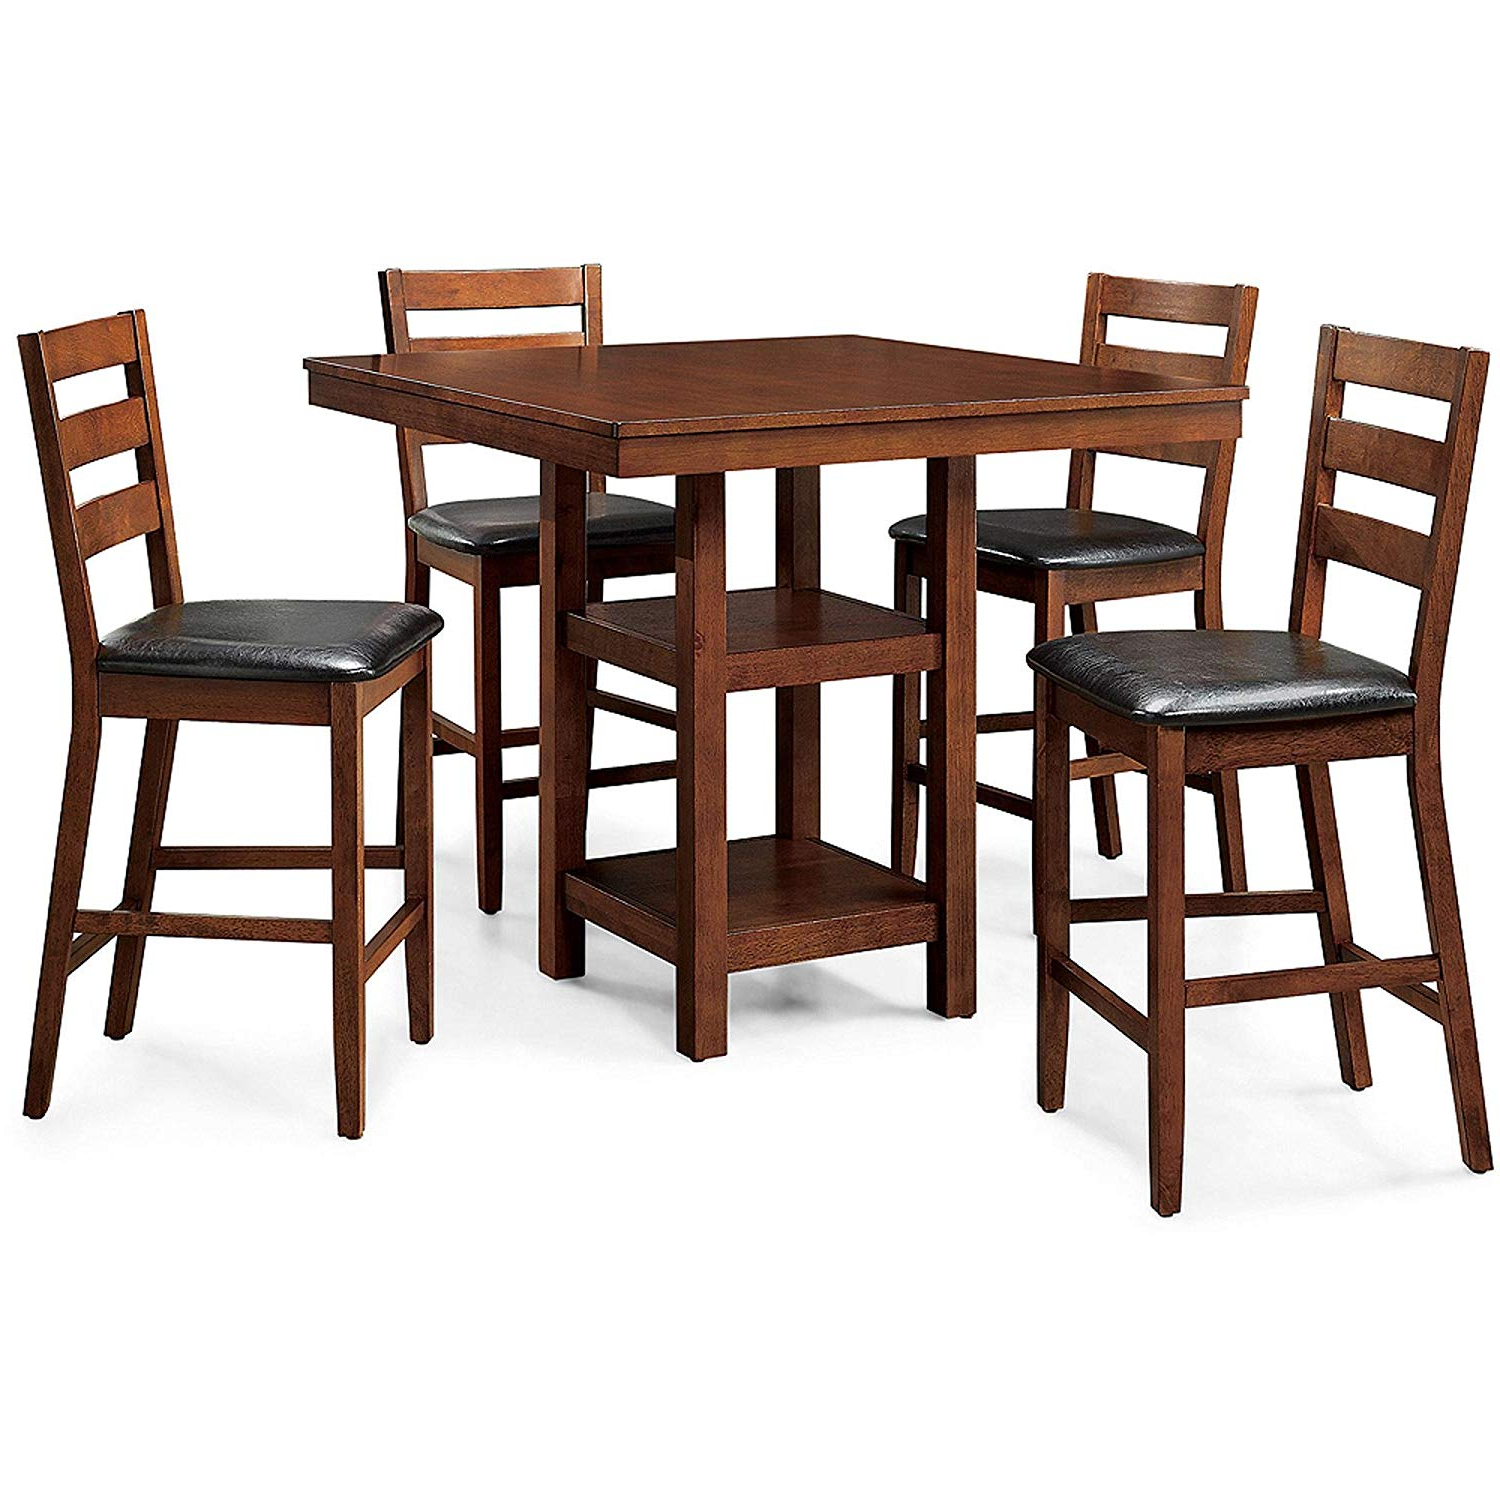 Denzel 5 Piece Counter Height Breakfast Nook Dining Sets With Regard To Fashionable Amazon – 5 Piece Dalton Park Counter Height Dining Set, Mocha (Gallery 6 of 25)